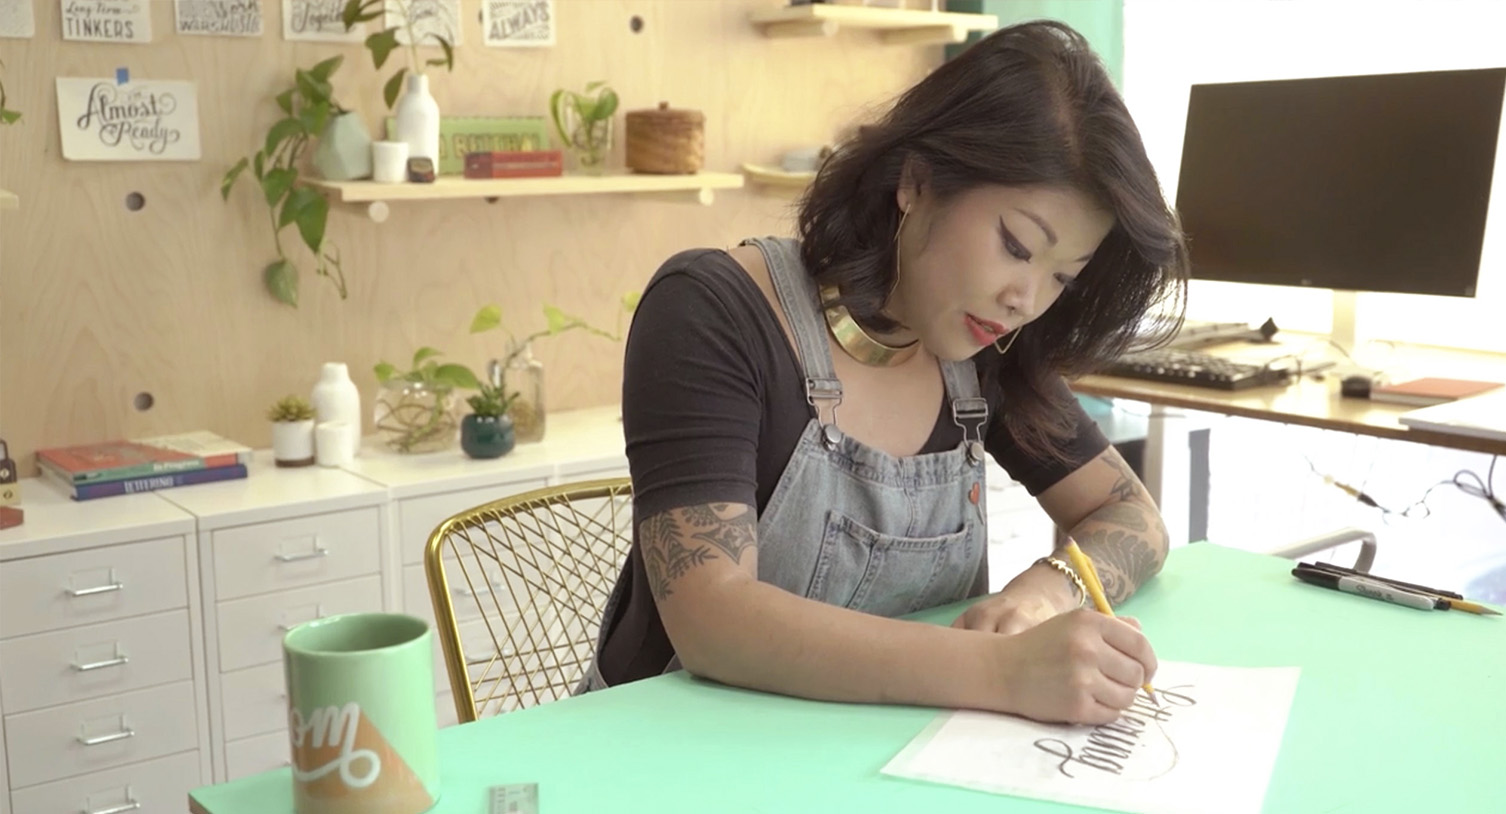 LEARN LETTERING WITH ME ONLINE! - The Art of Lovely & Legible Lettering is my online lettering course for beginners. This class is like pulling up a virtual seat next to me in my studio for an entire day!